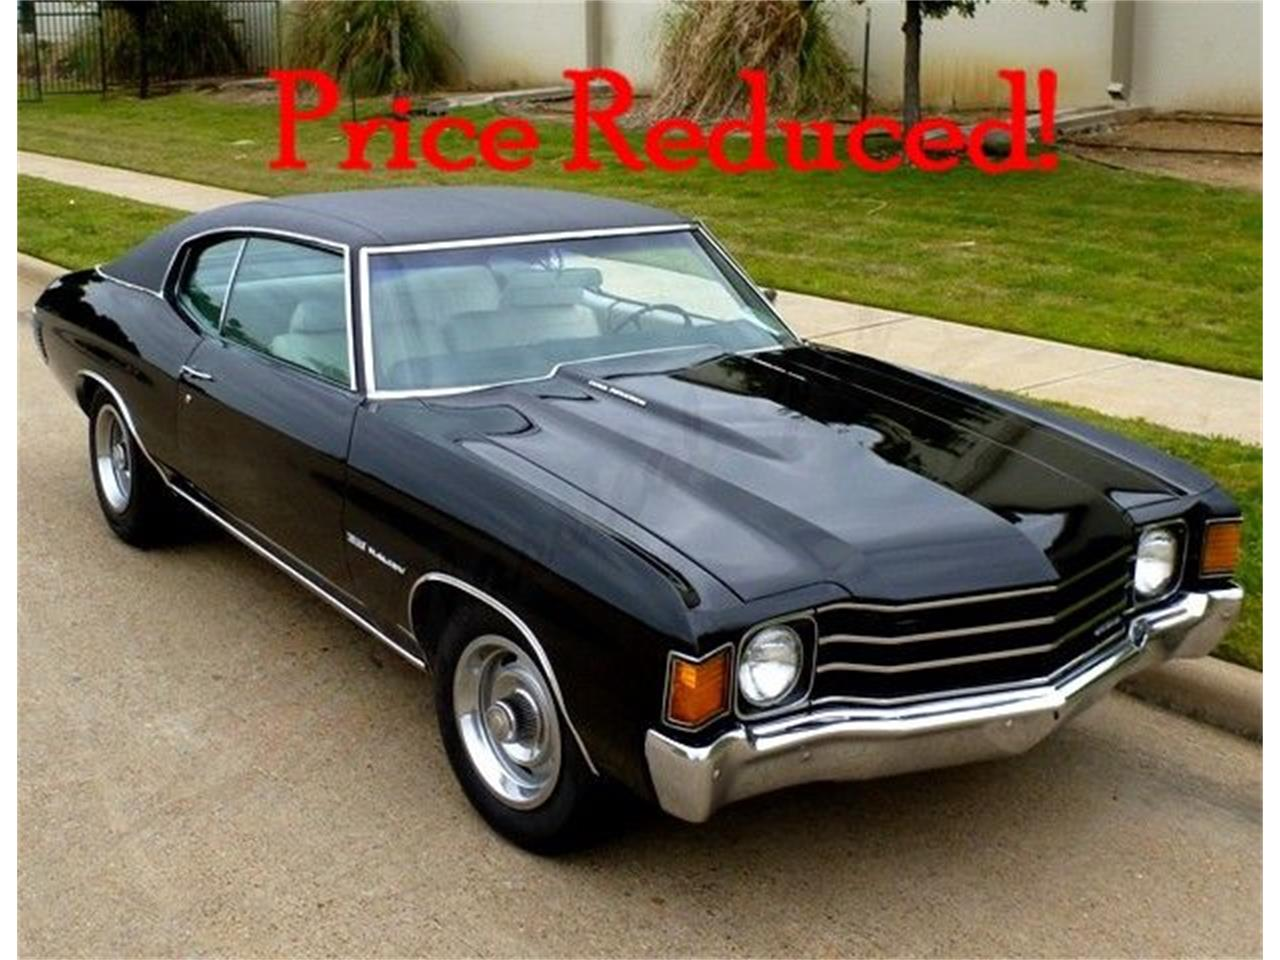 Large Picture of '72 Chevrolet Chevelle Malibu - $22,500.00 Offered by Classical Gas Enterprises - L2Q6